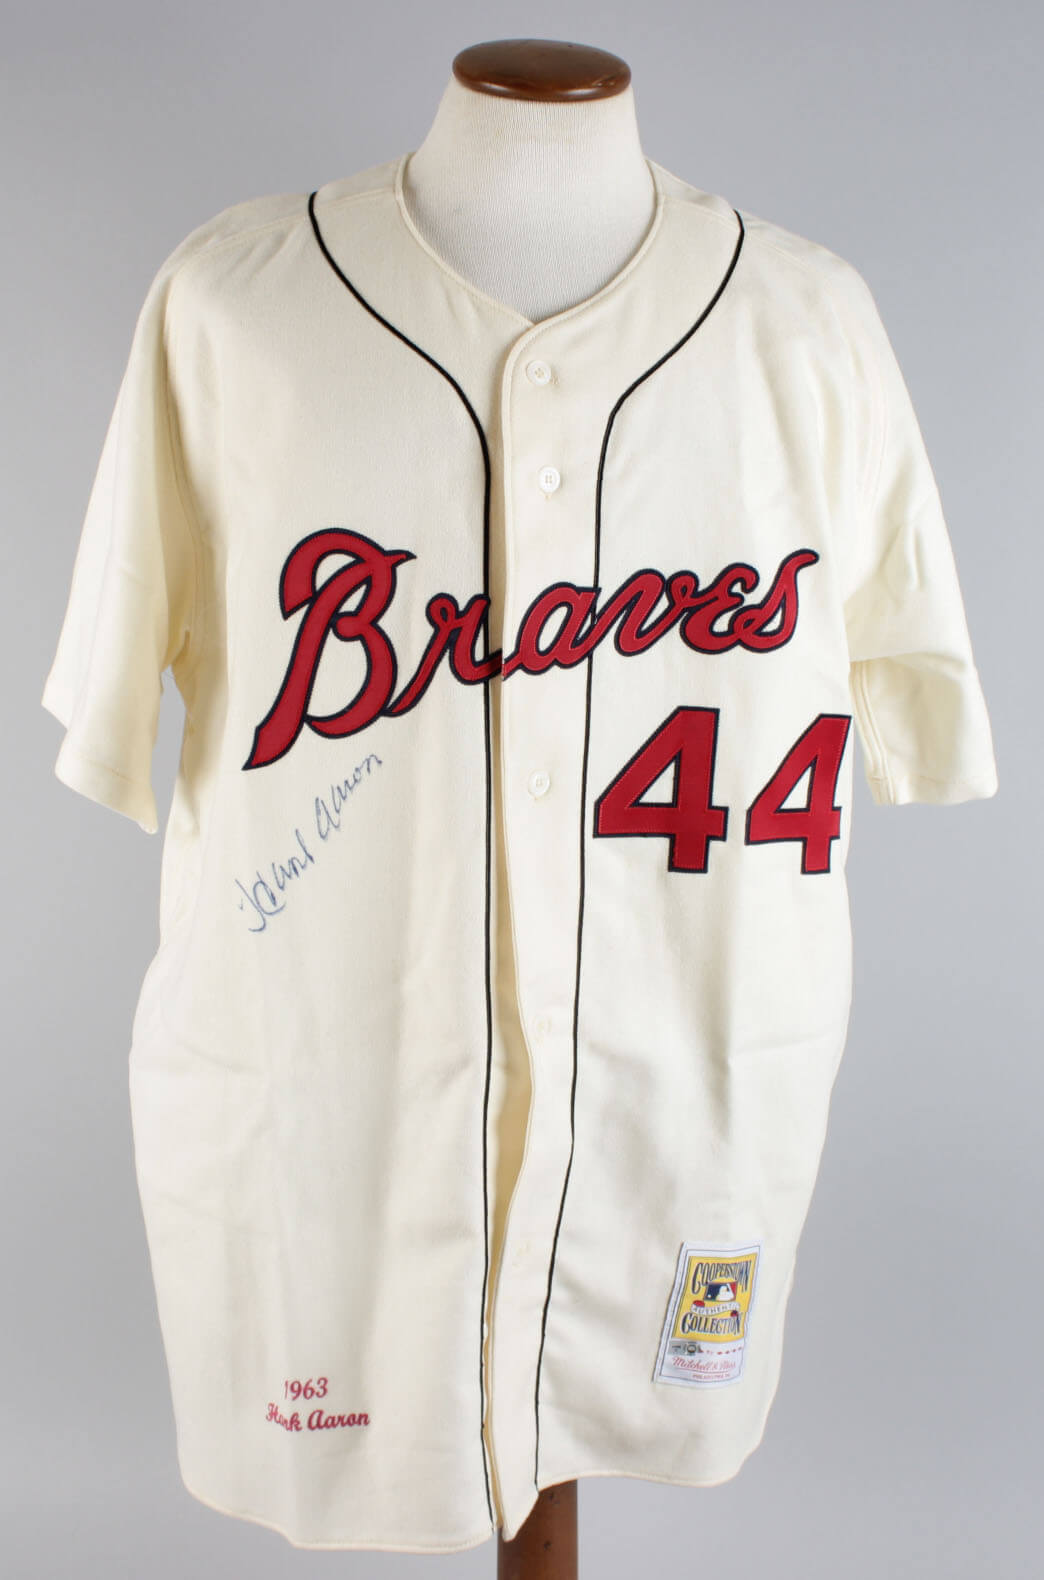 25da884c Hank Aaron Signed Milwaukee Braves Cooperstown Collection Mitchell & Ness  Jersey – JSA Full LOA